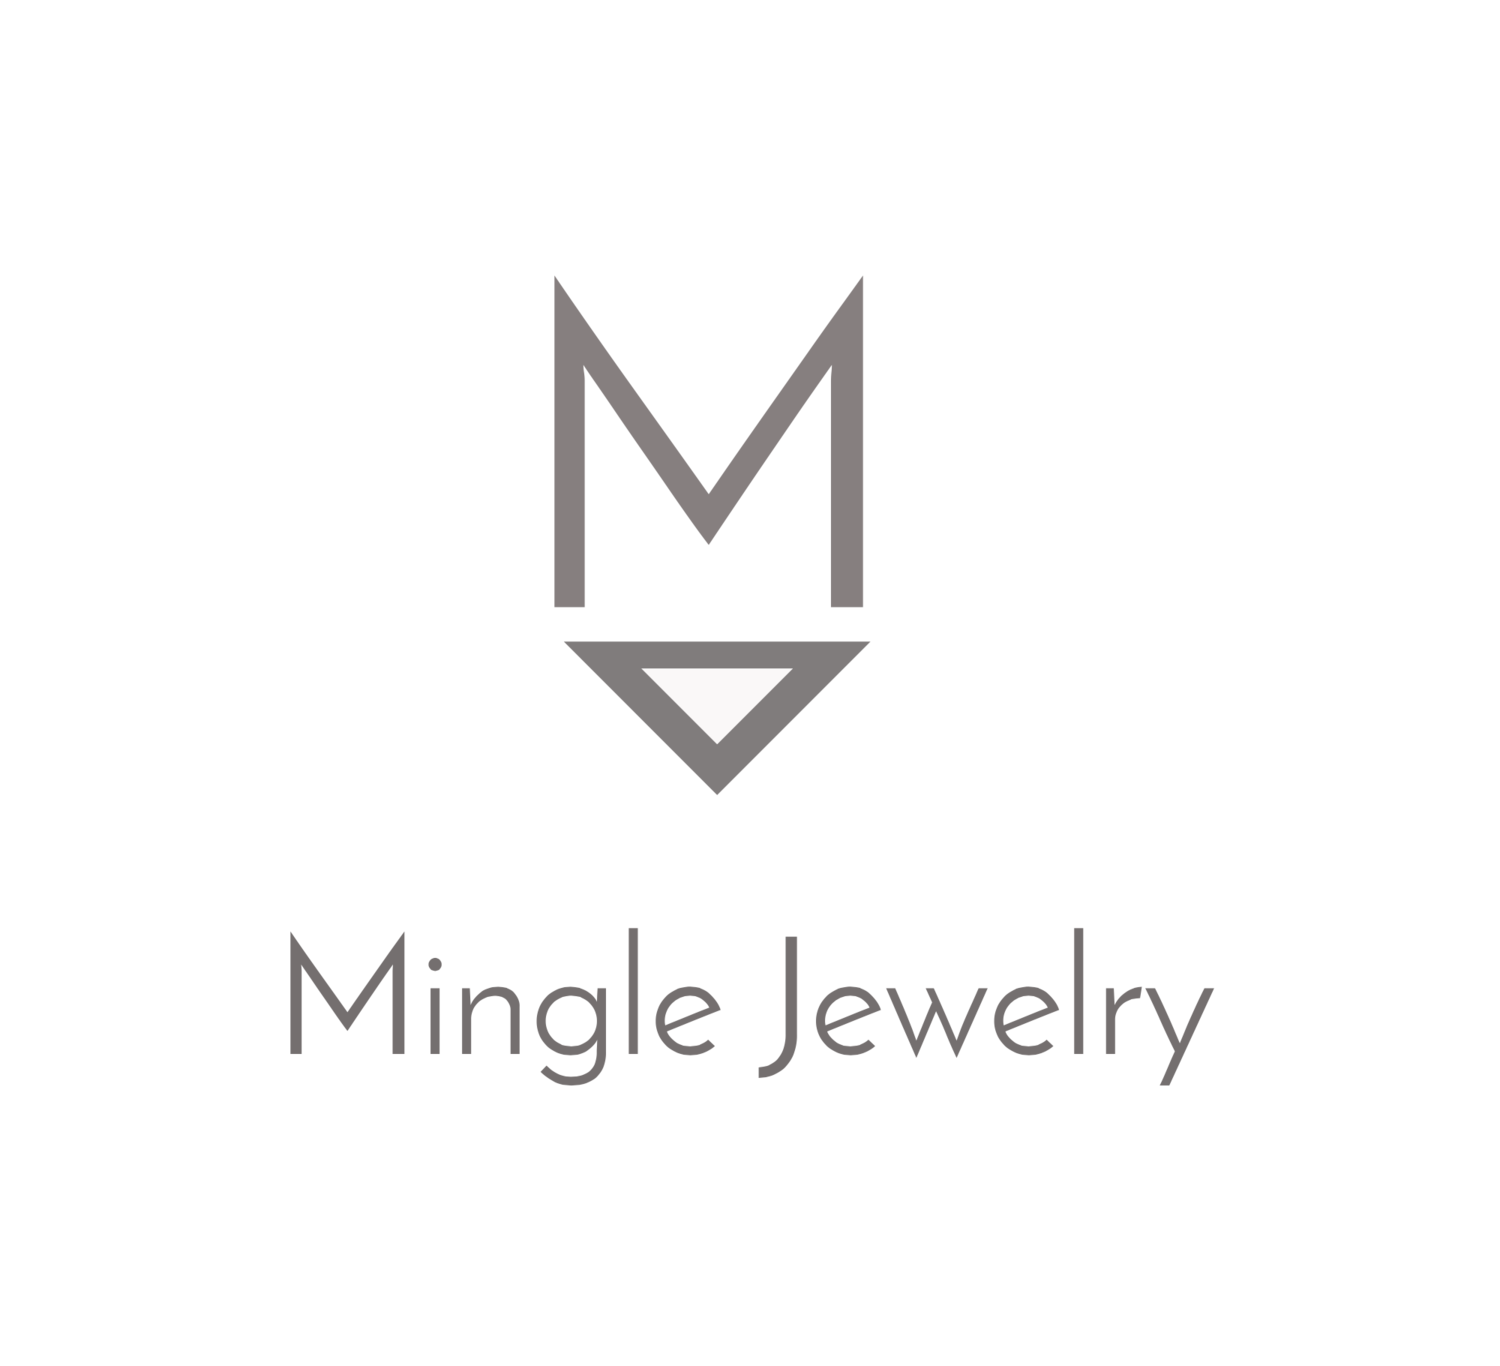 Mingle Jewelry